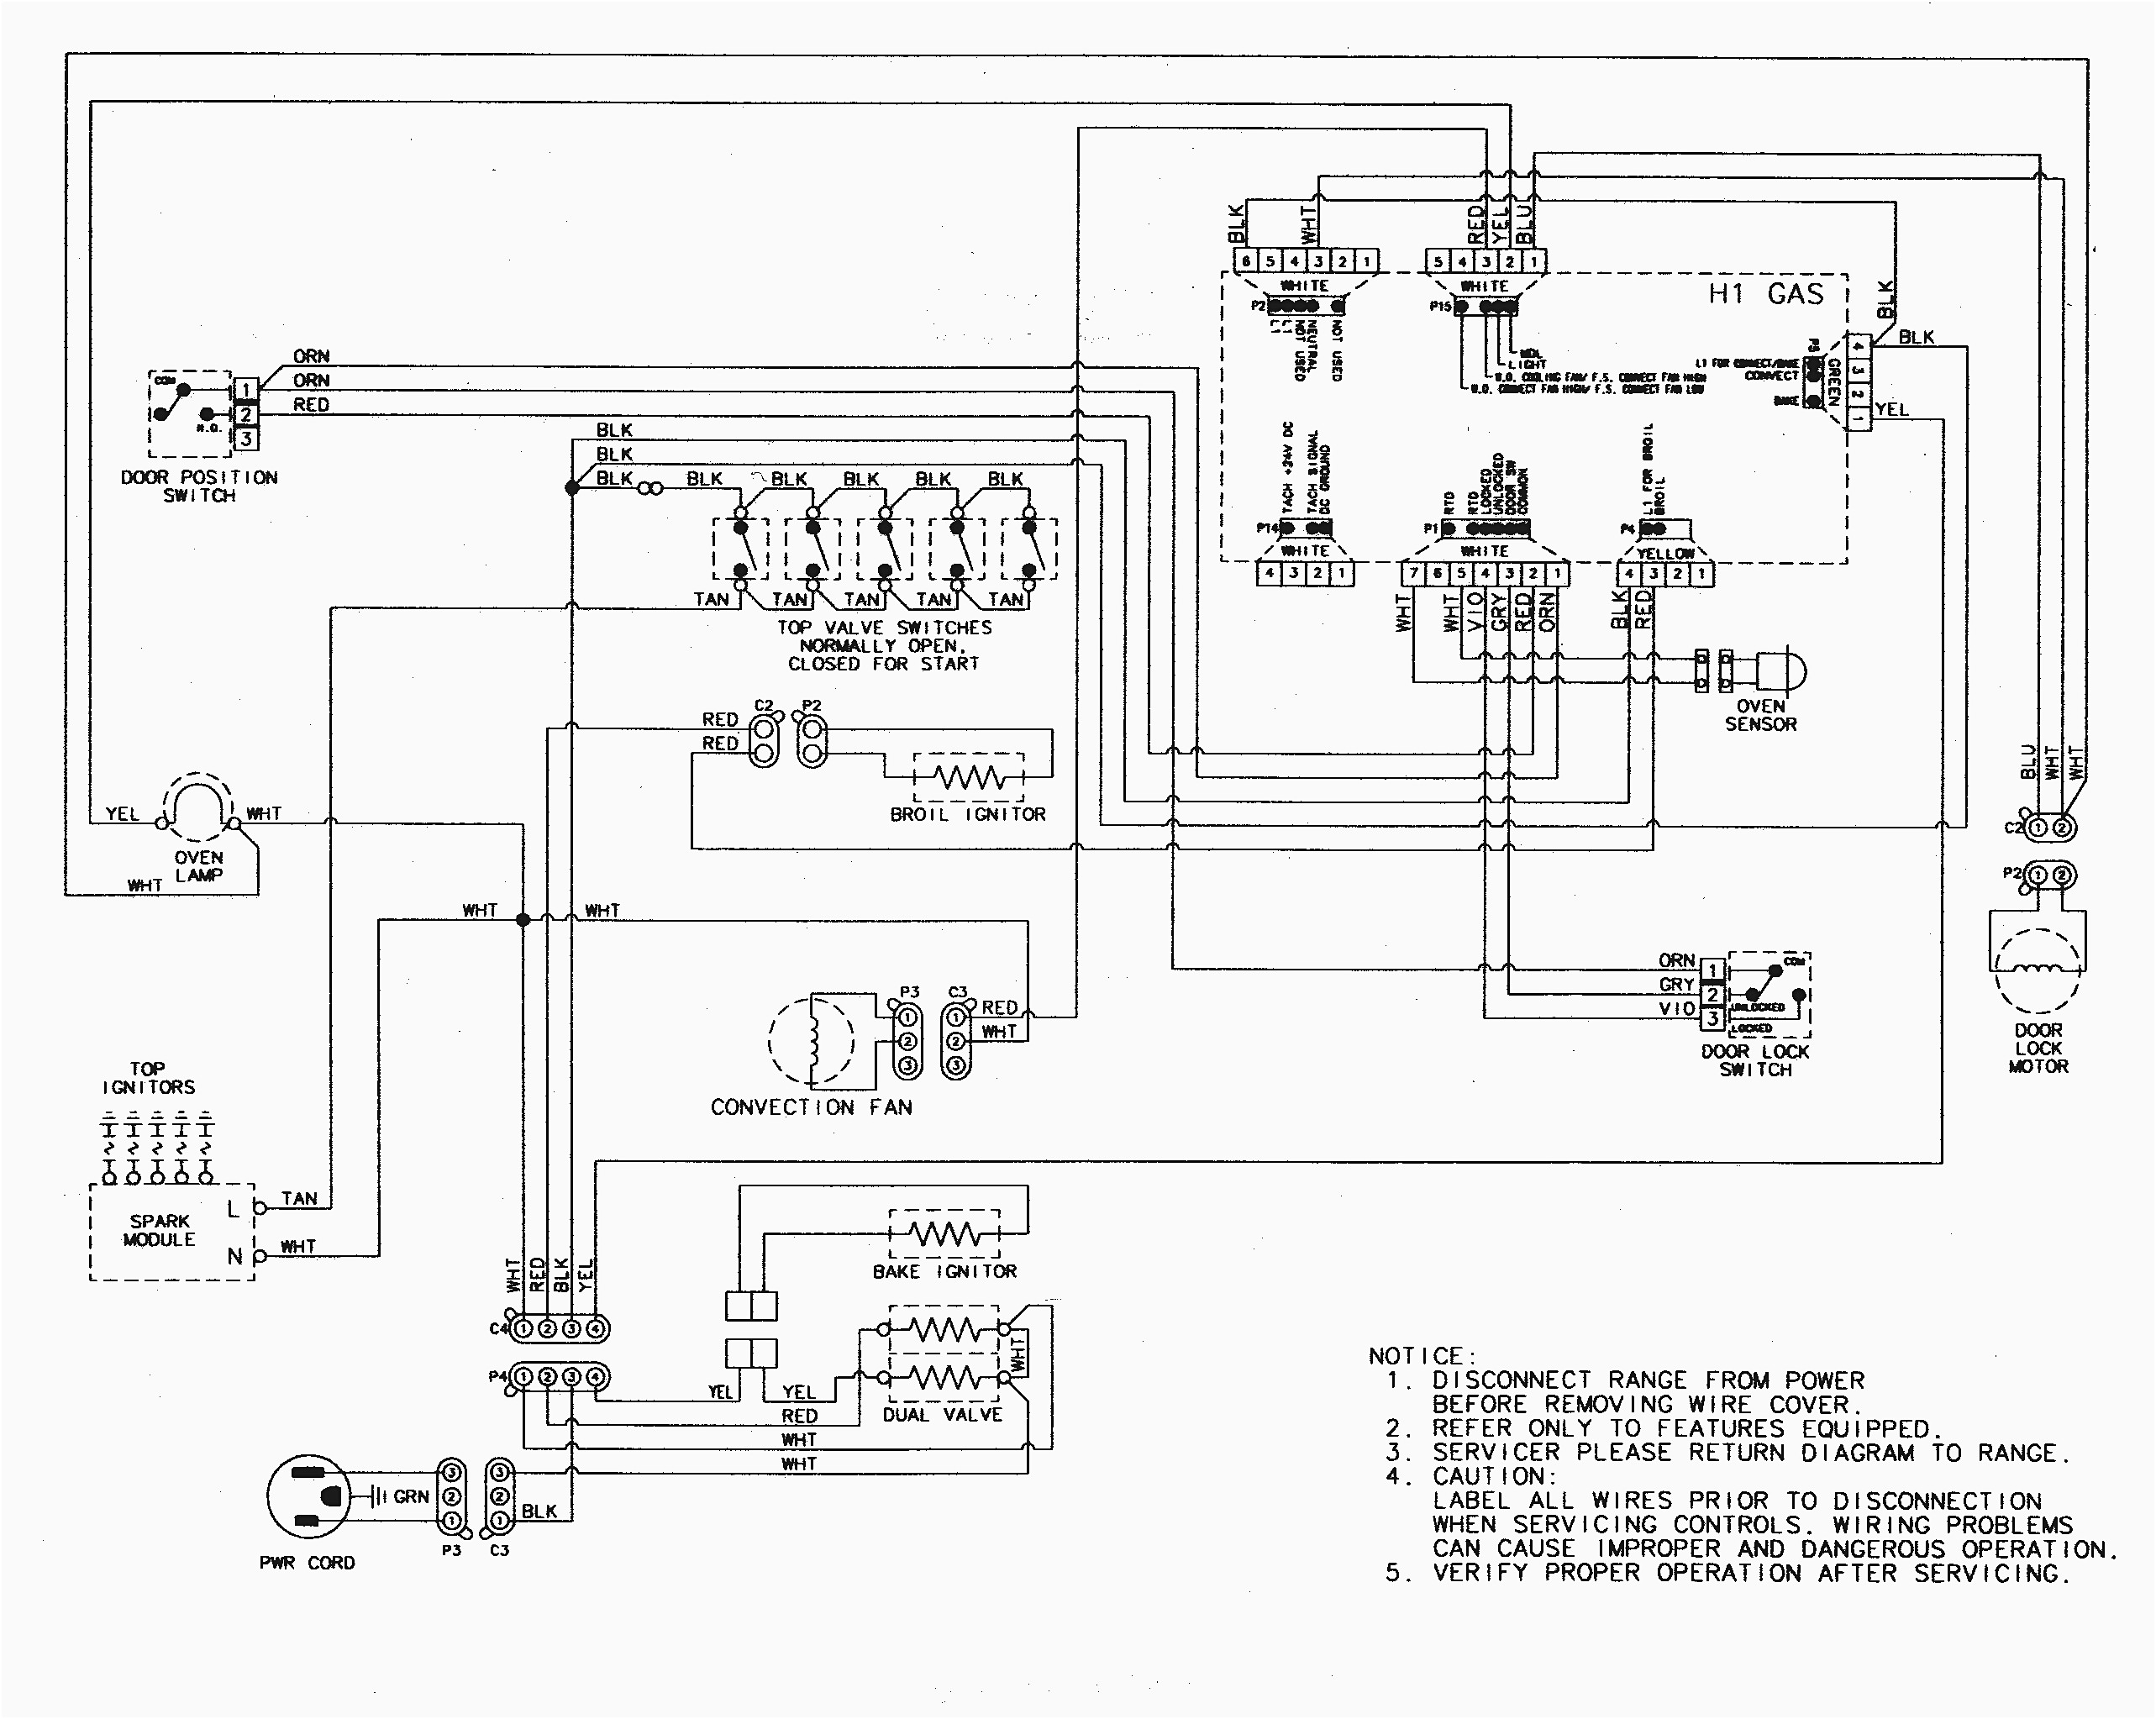 Diagram Of A Range Schematic Wiring - Data Wiring Diagram